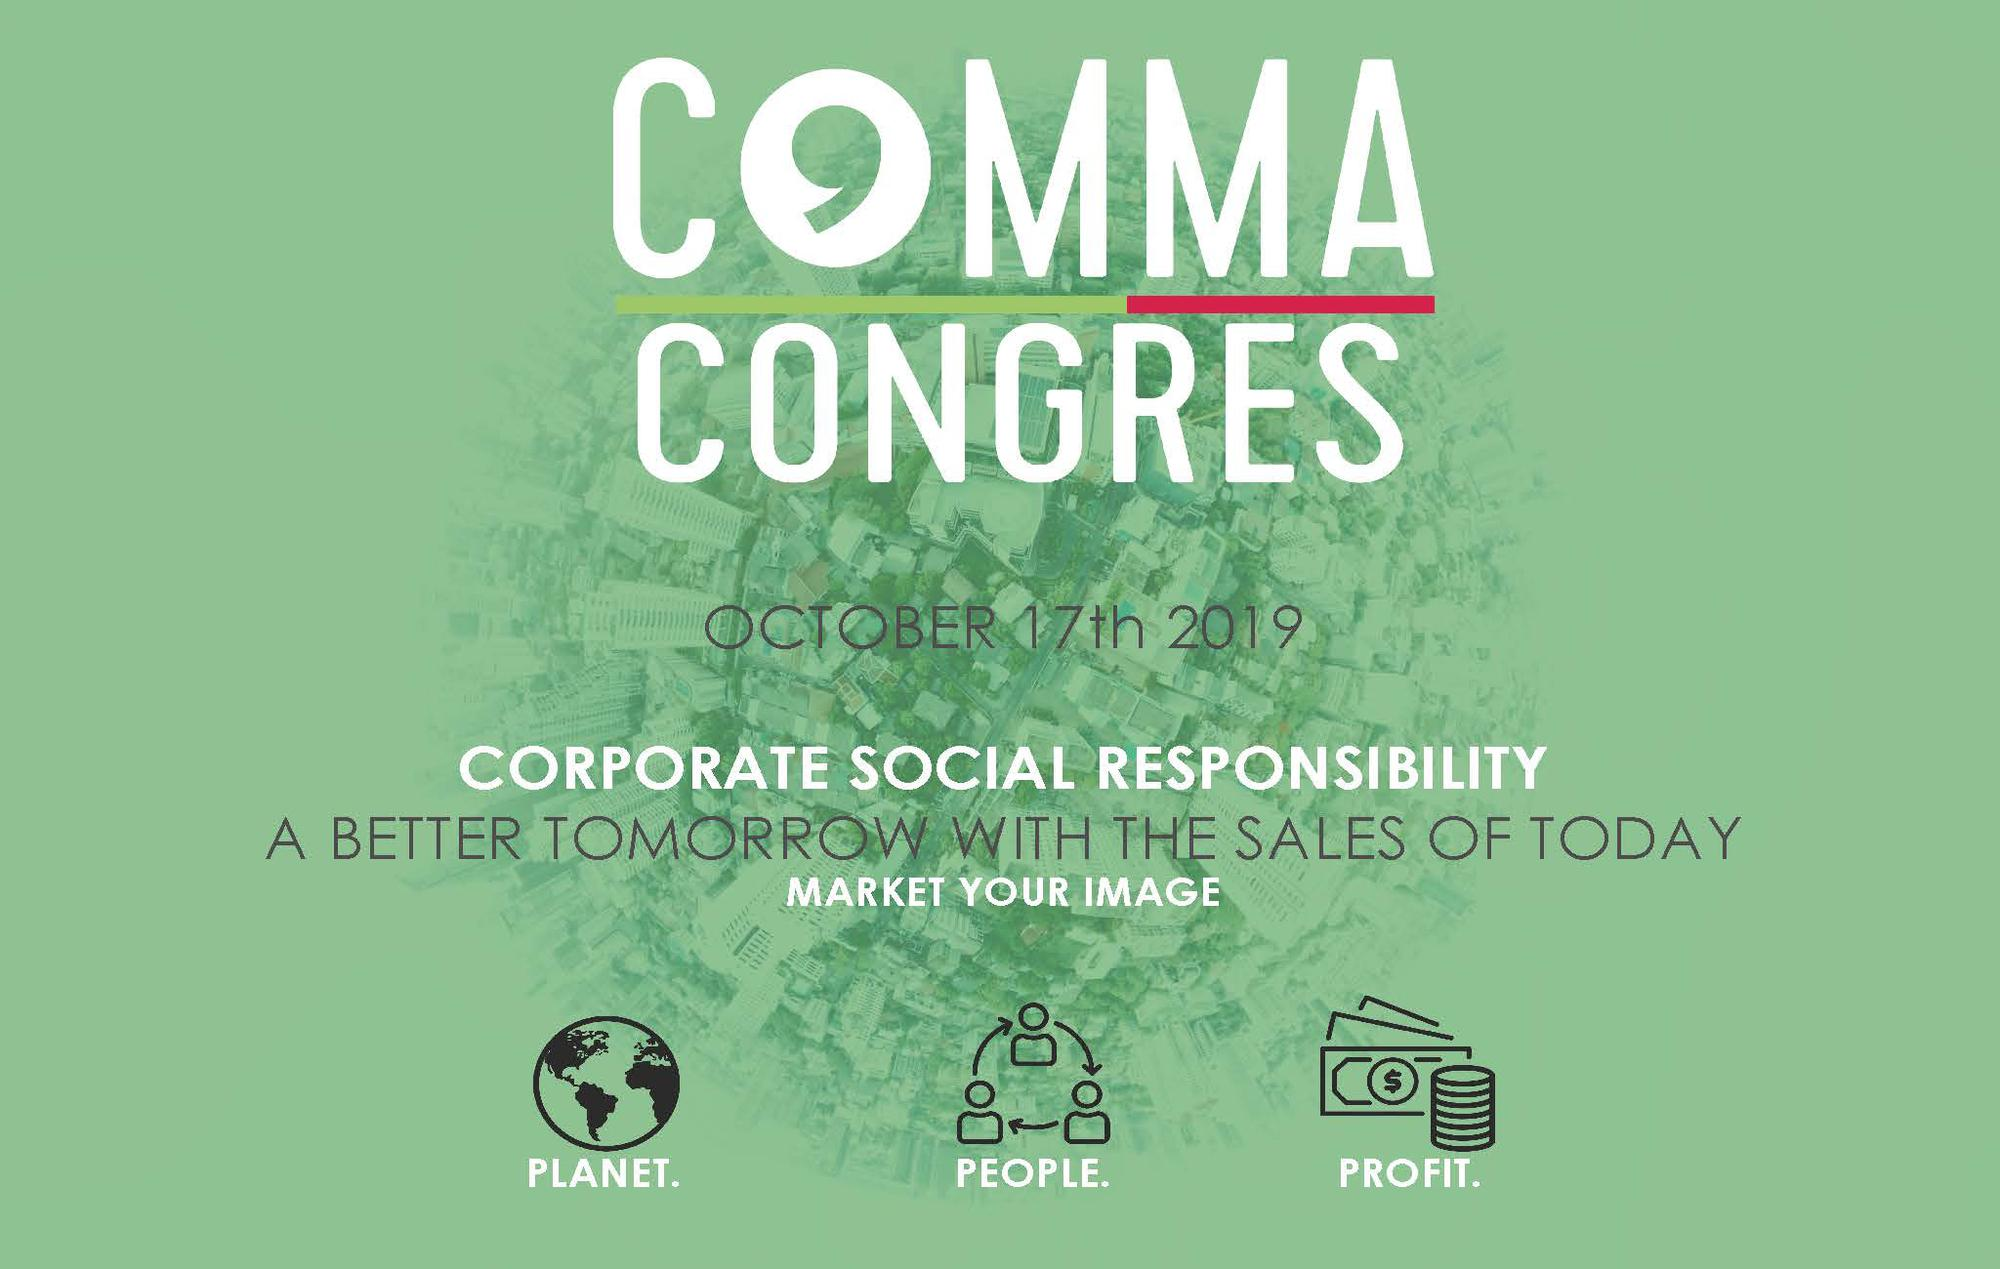 ComMa Congress